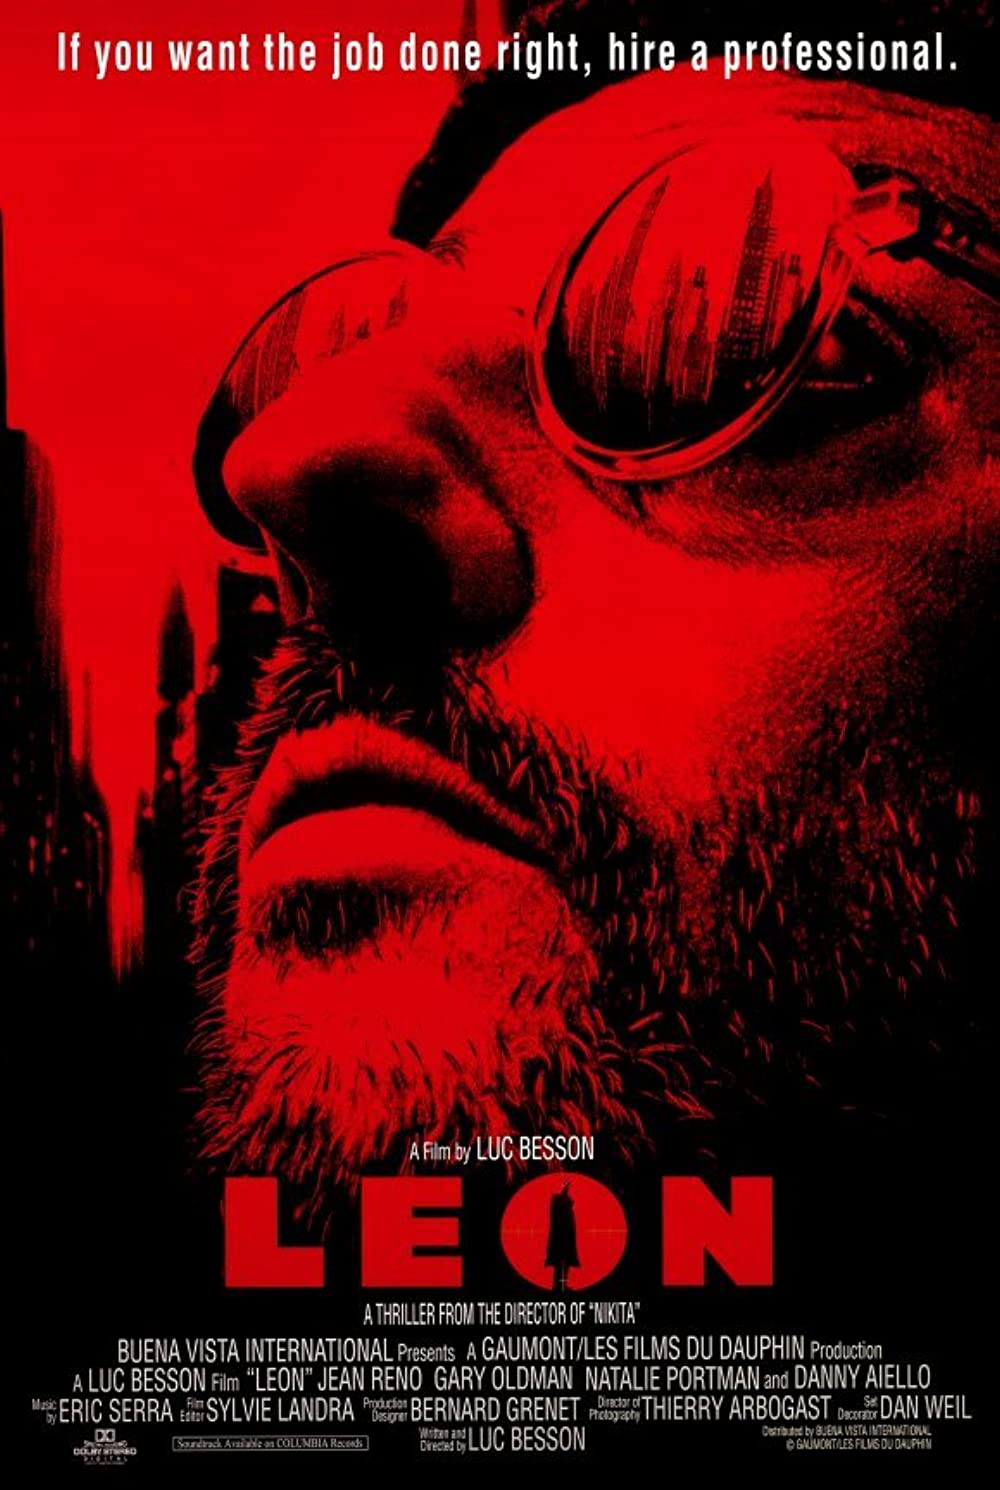 Léon: Der Profi: Directed by Luc Besson. With Jean Reno, Gary Oldman, Natalie Portman, Danny Aiello. Mathilda, a 12-year-old girl, is reluctantly taken in by Léon, a professional assassin, after her family is murdered. An unusual relationship forms...